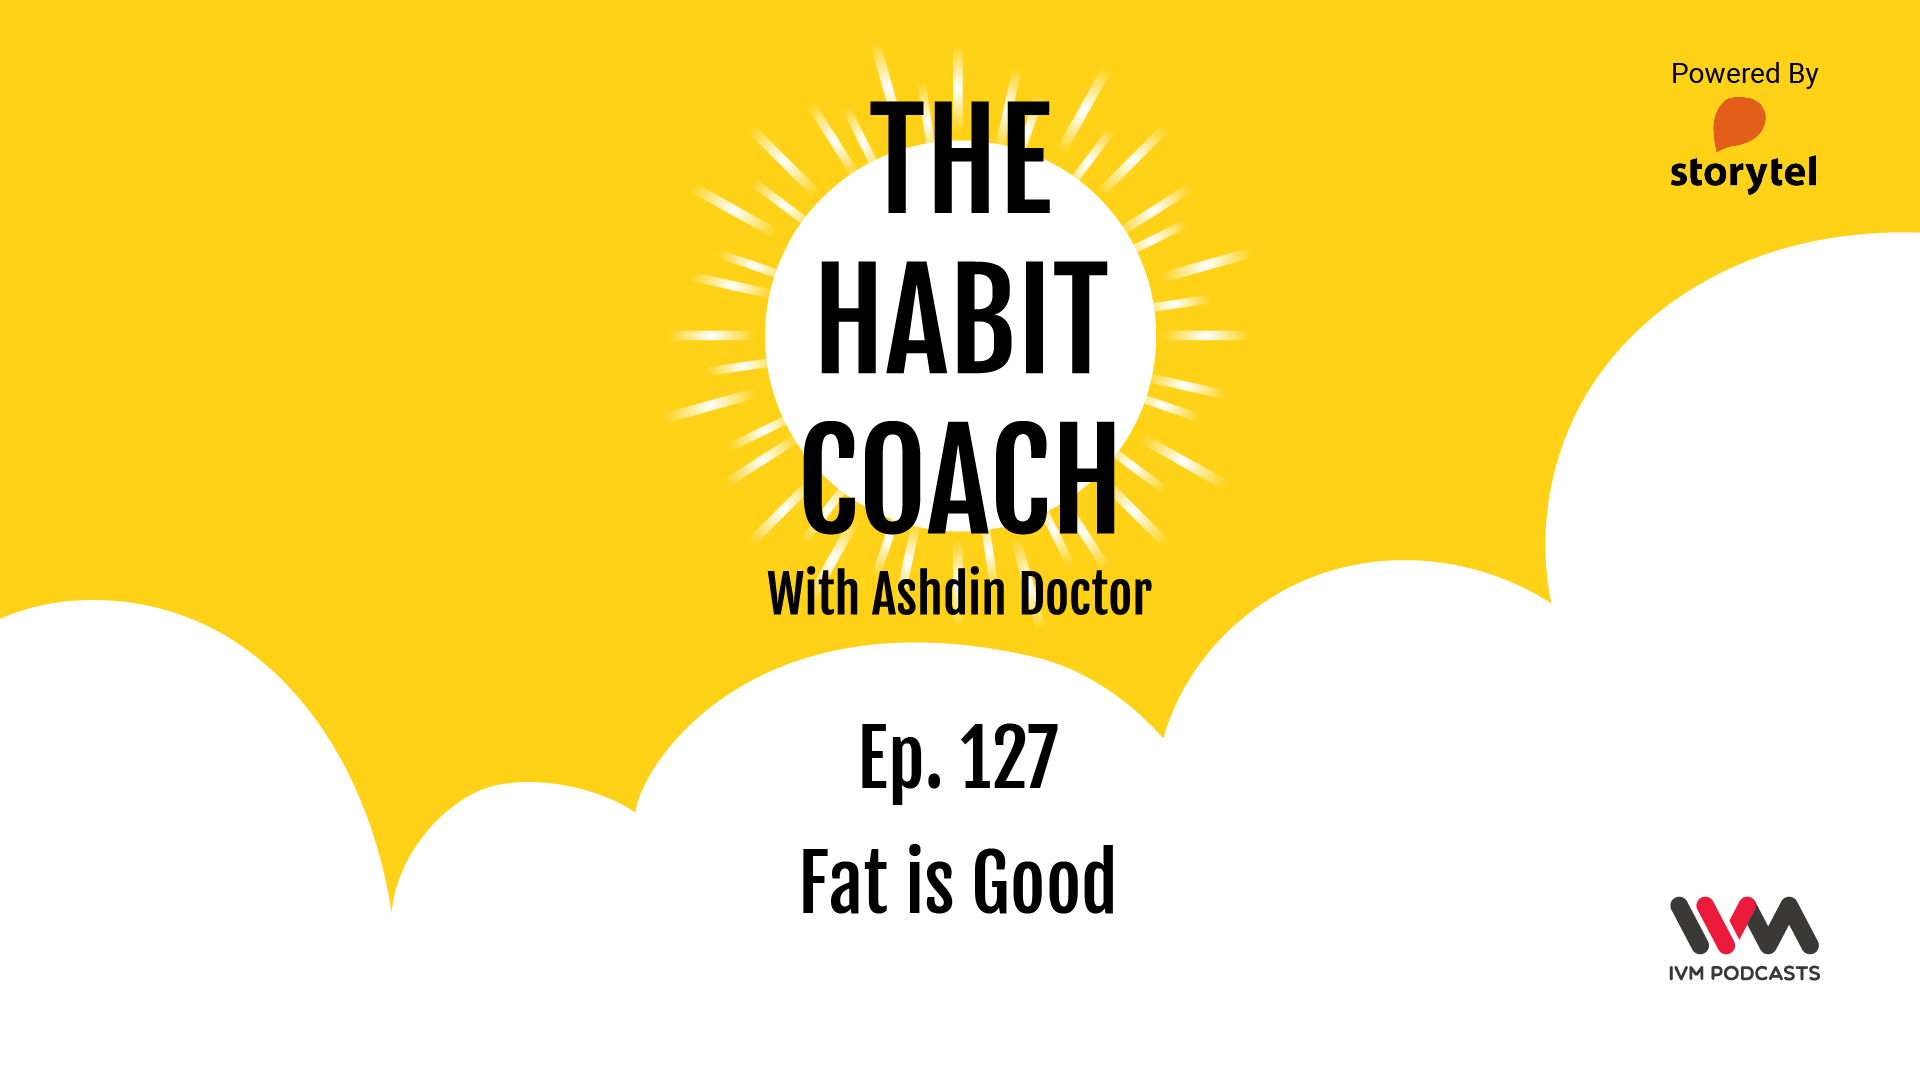 TheHabitCoachEpisode127.png